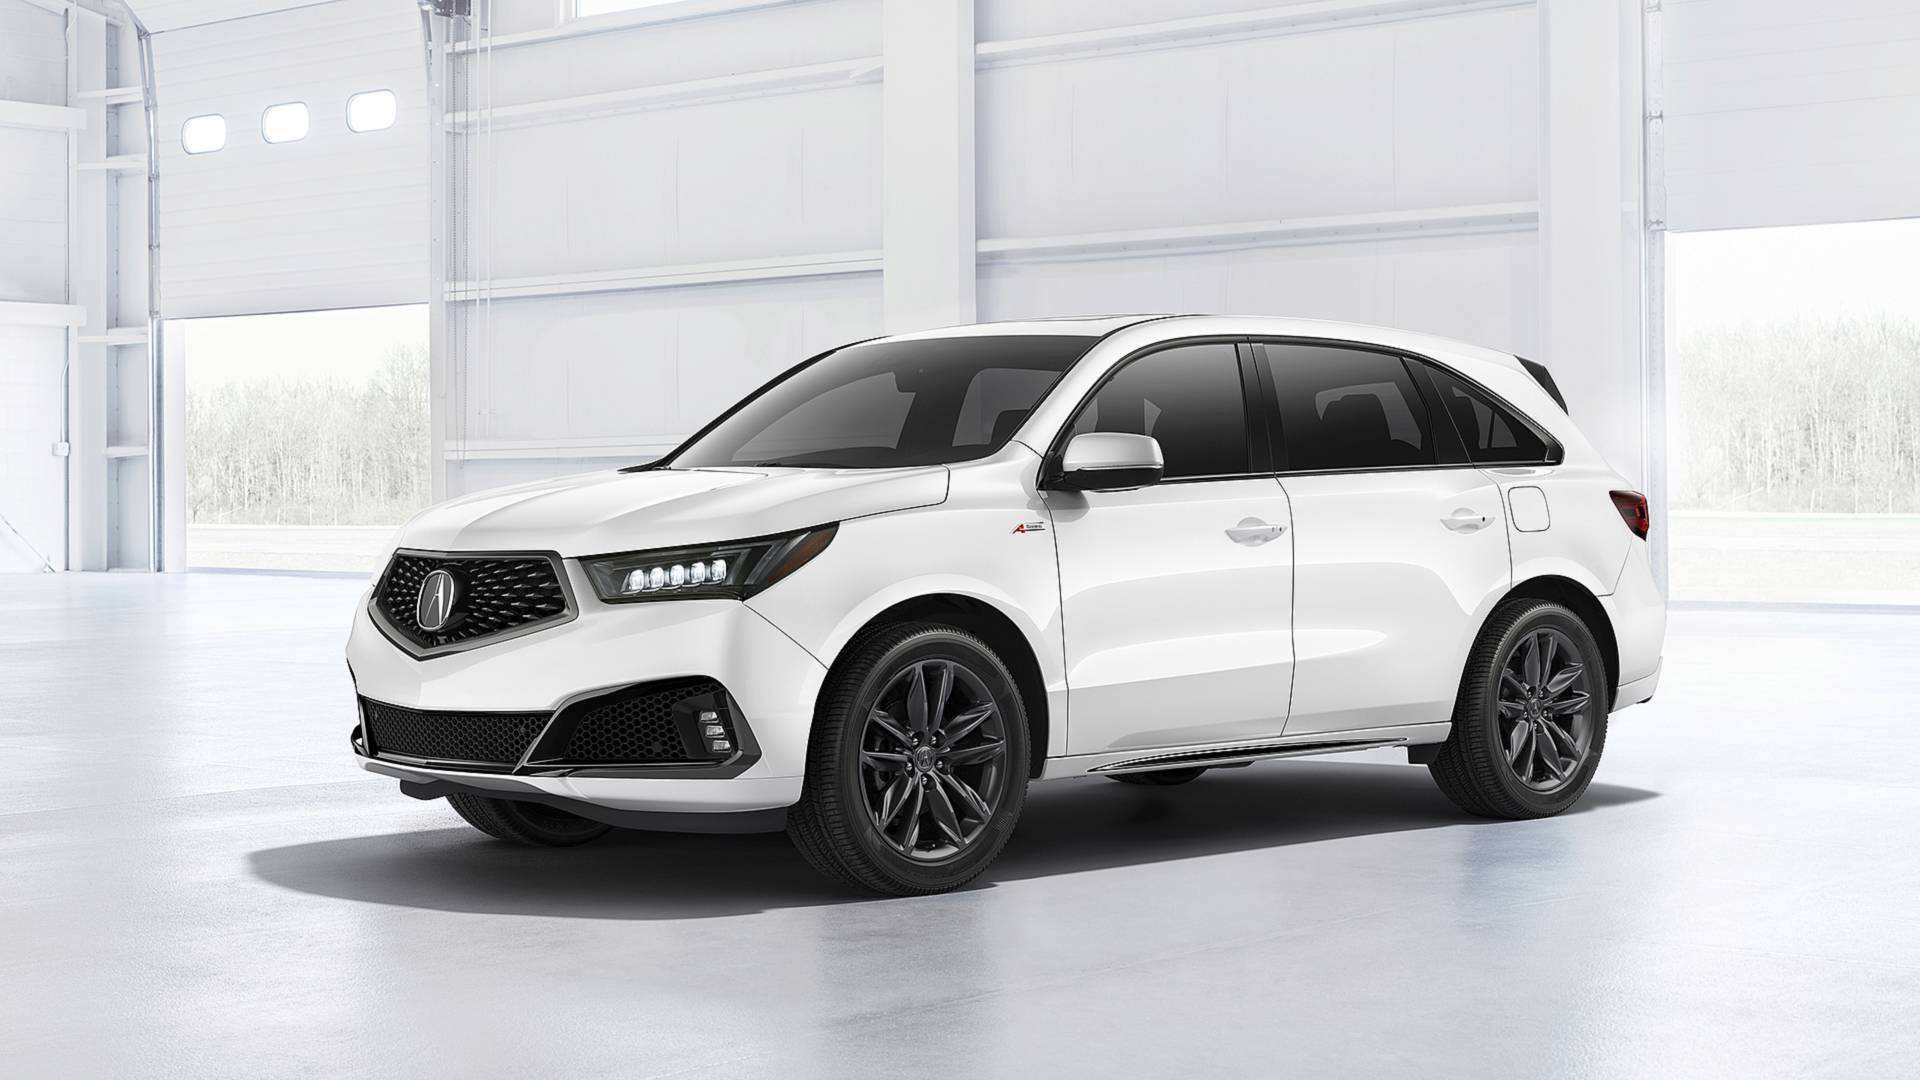 71 The Best 2020 Acura Mdx Spy Shots New Concept